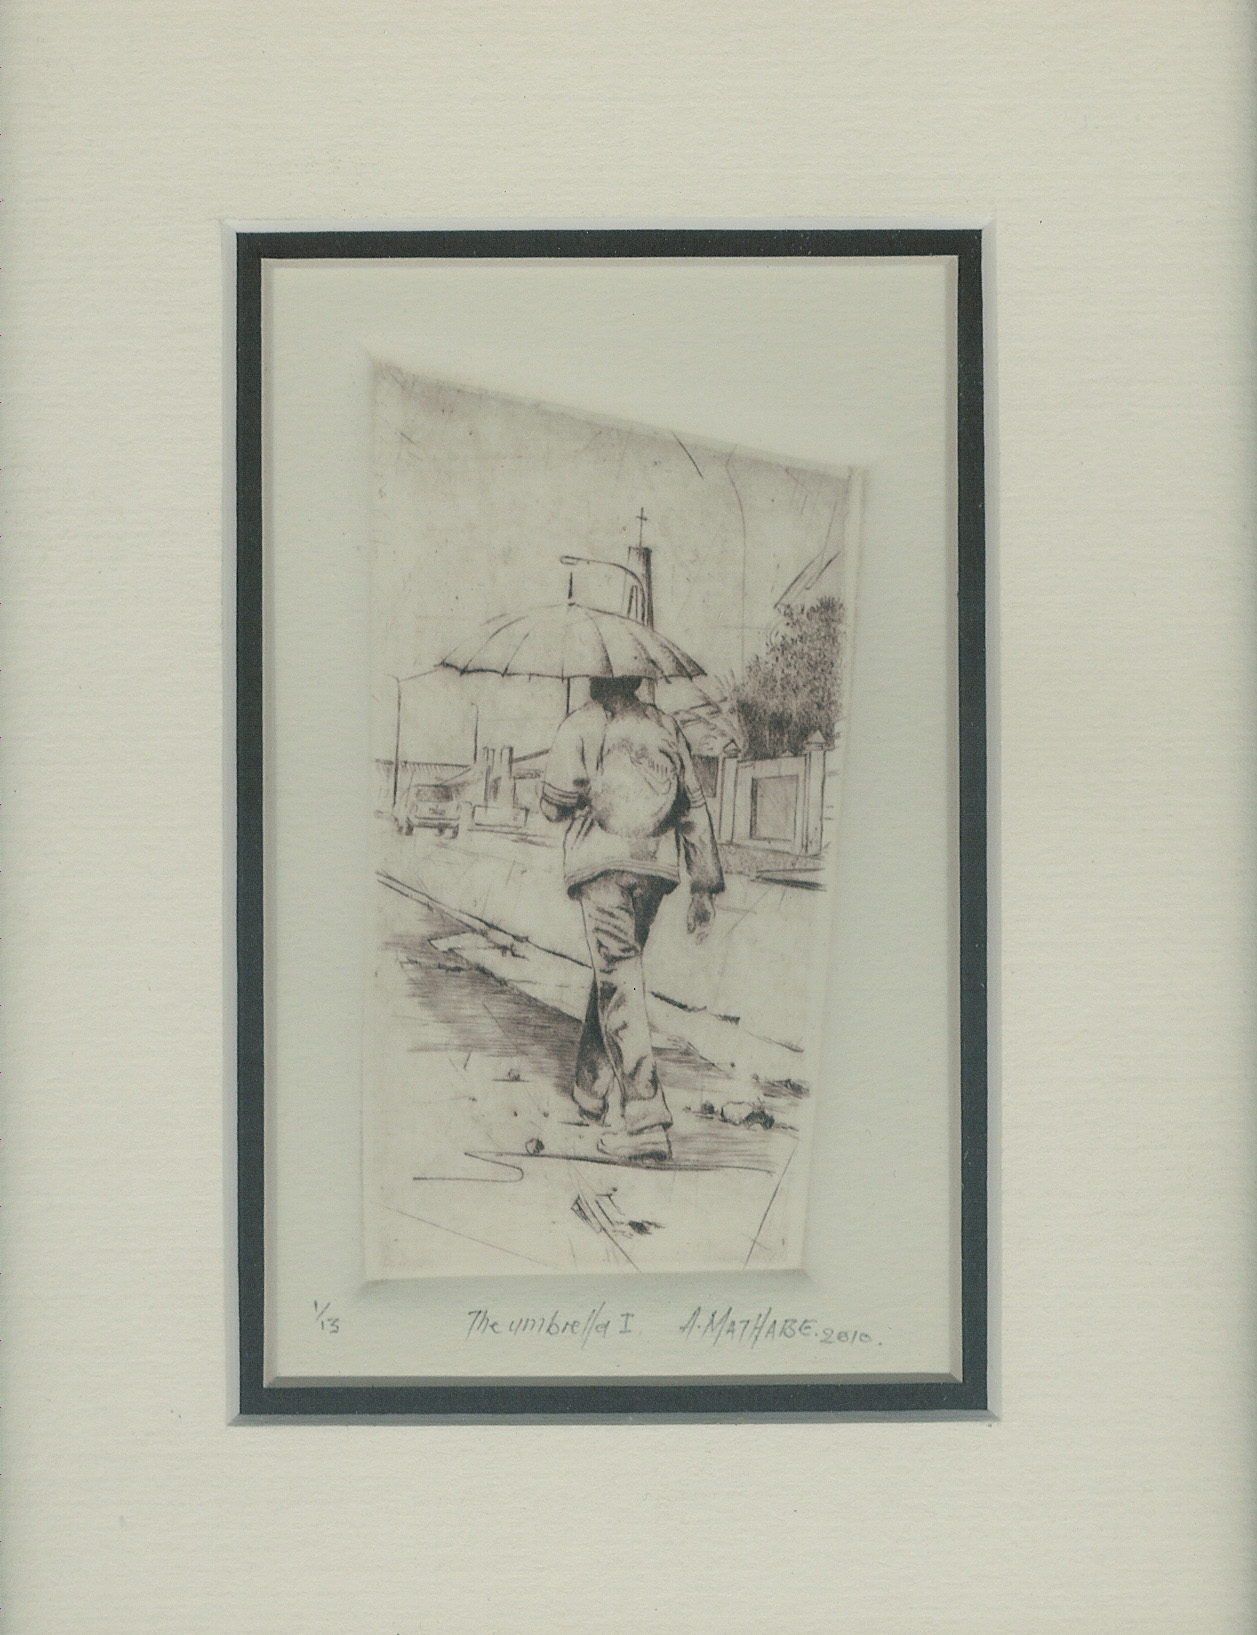 4 The Umbrella I by Abe Mathabe - Dry-Point on Perspex